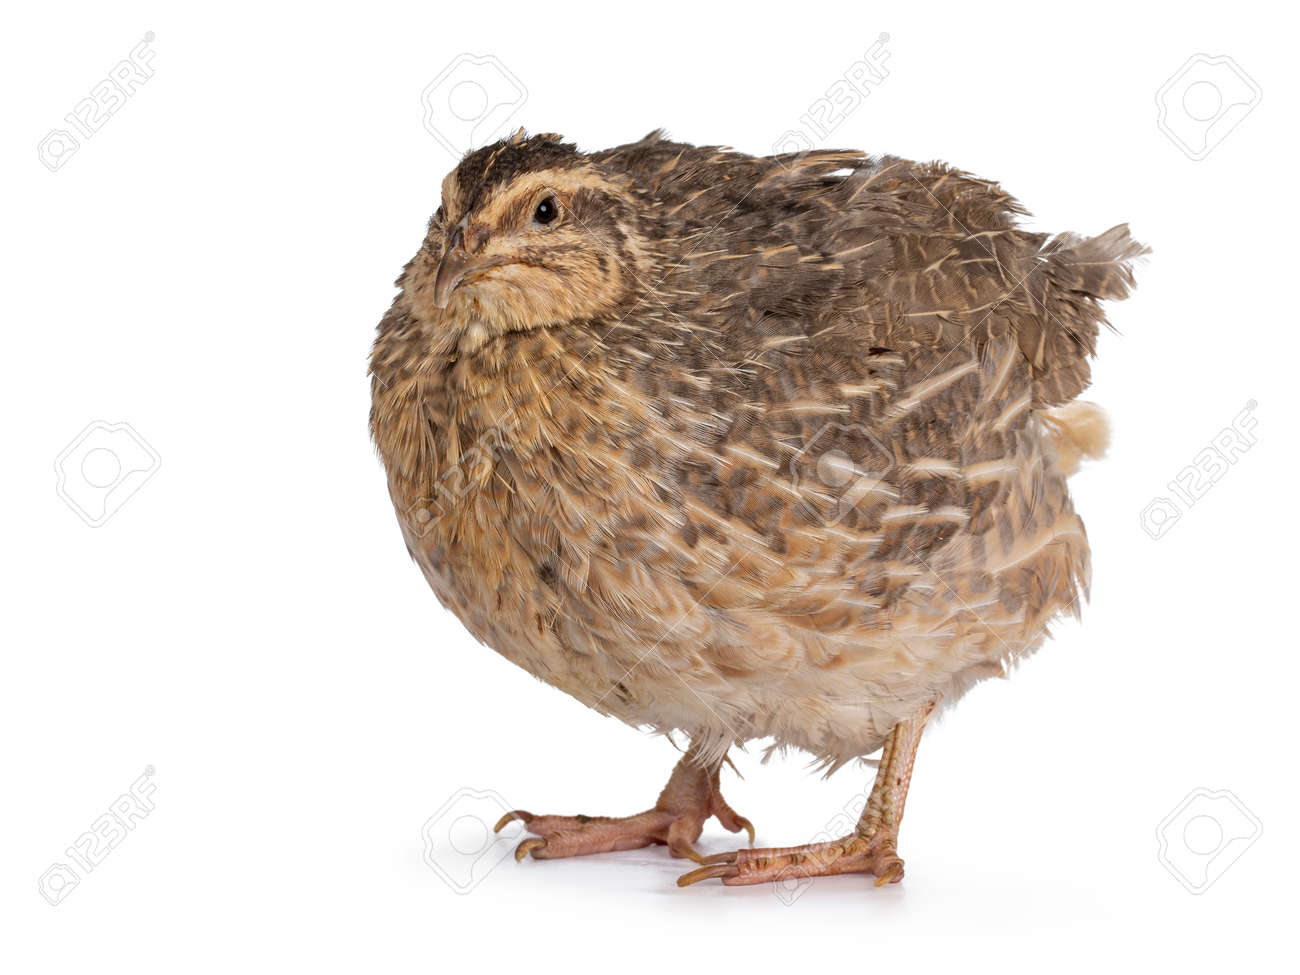 Pastel or blue Quail bird, standing side ways. Looking towards camera. isolated on a white background. - 173044741